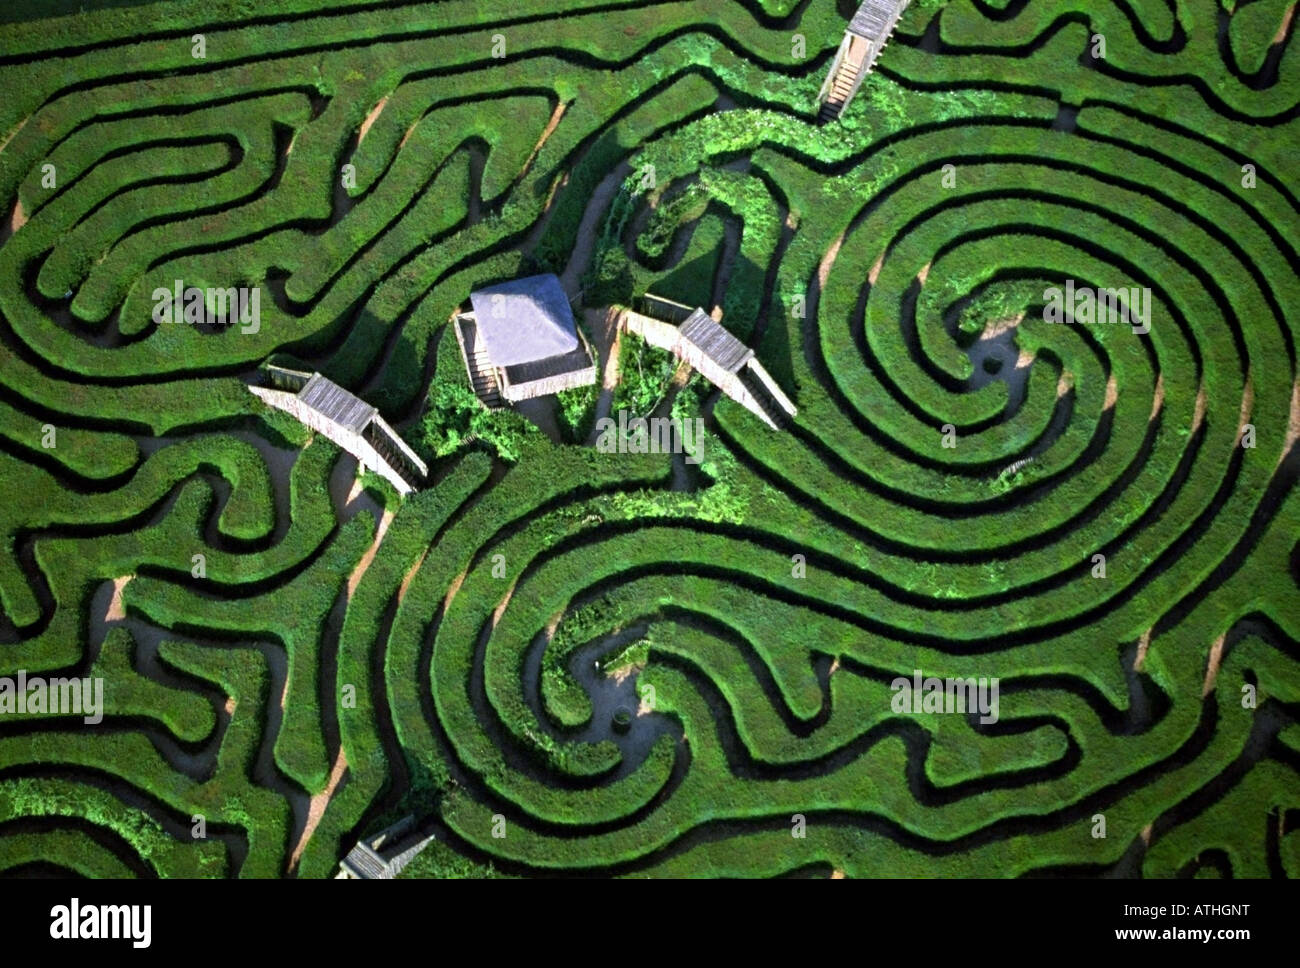 Longleat Maze aerial view, Wiltshire, England - Stock Image